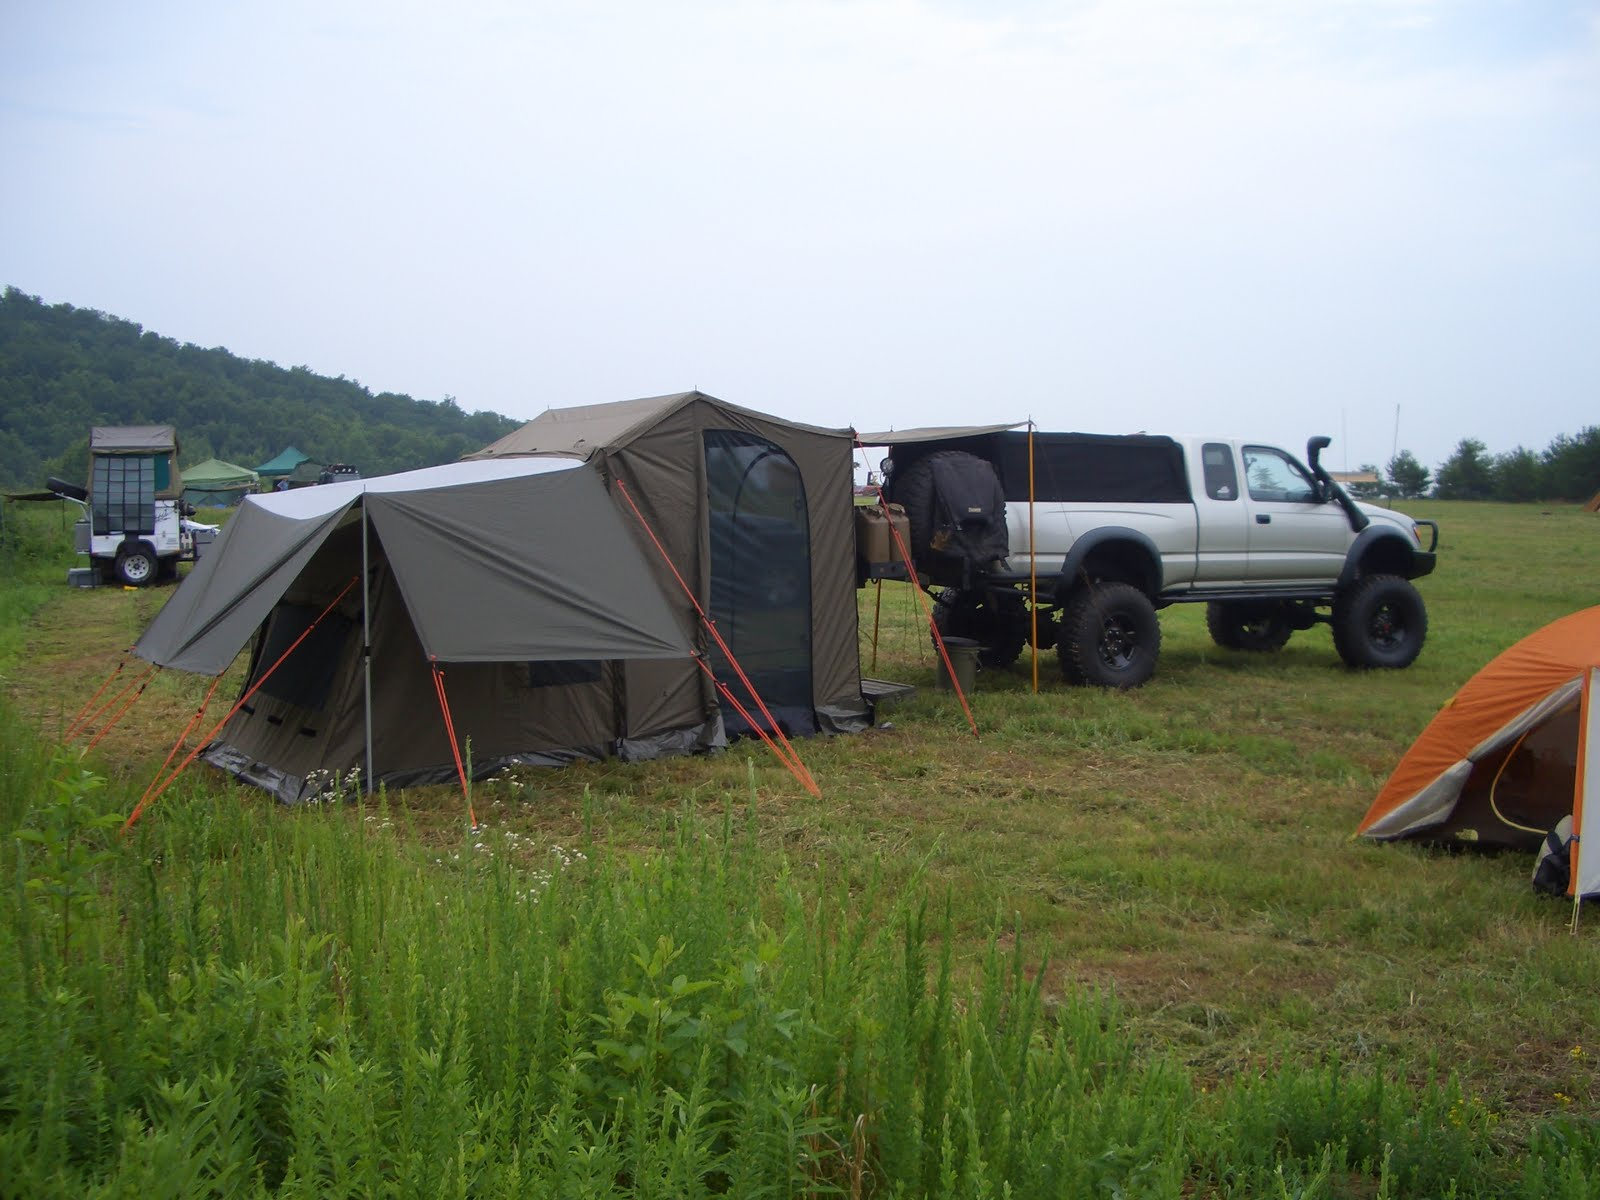 OzTent Customer Experience & Family Tent Camping : OzTent Customer Experience